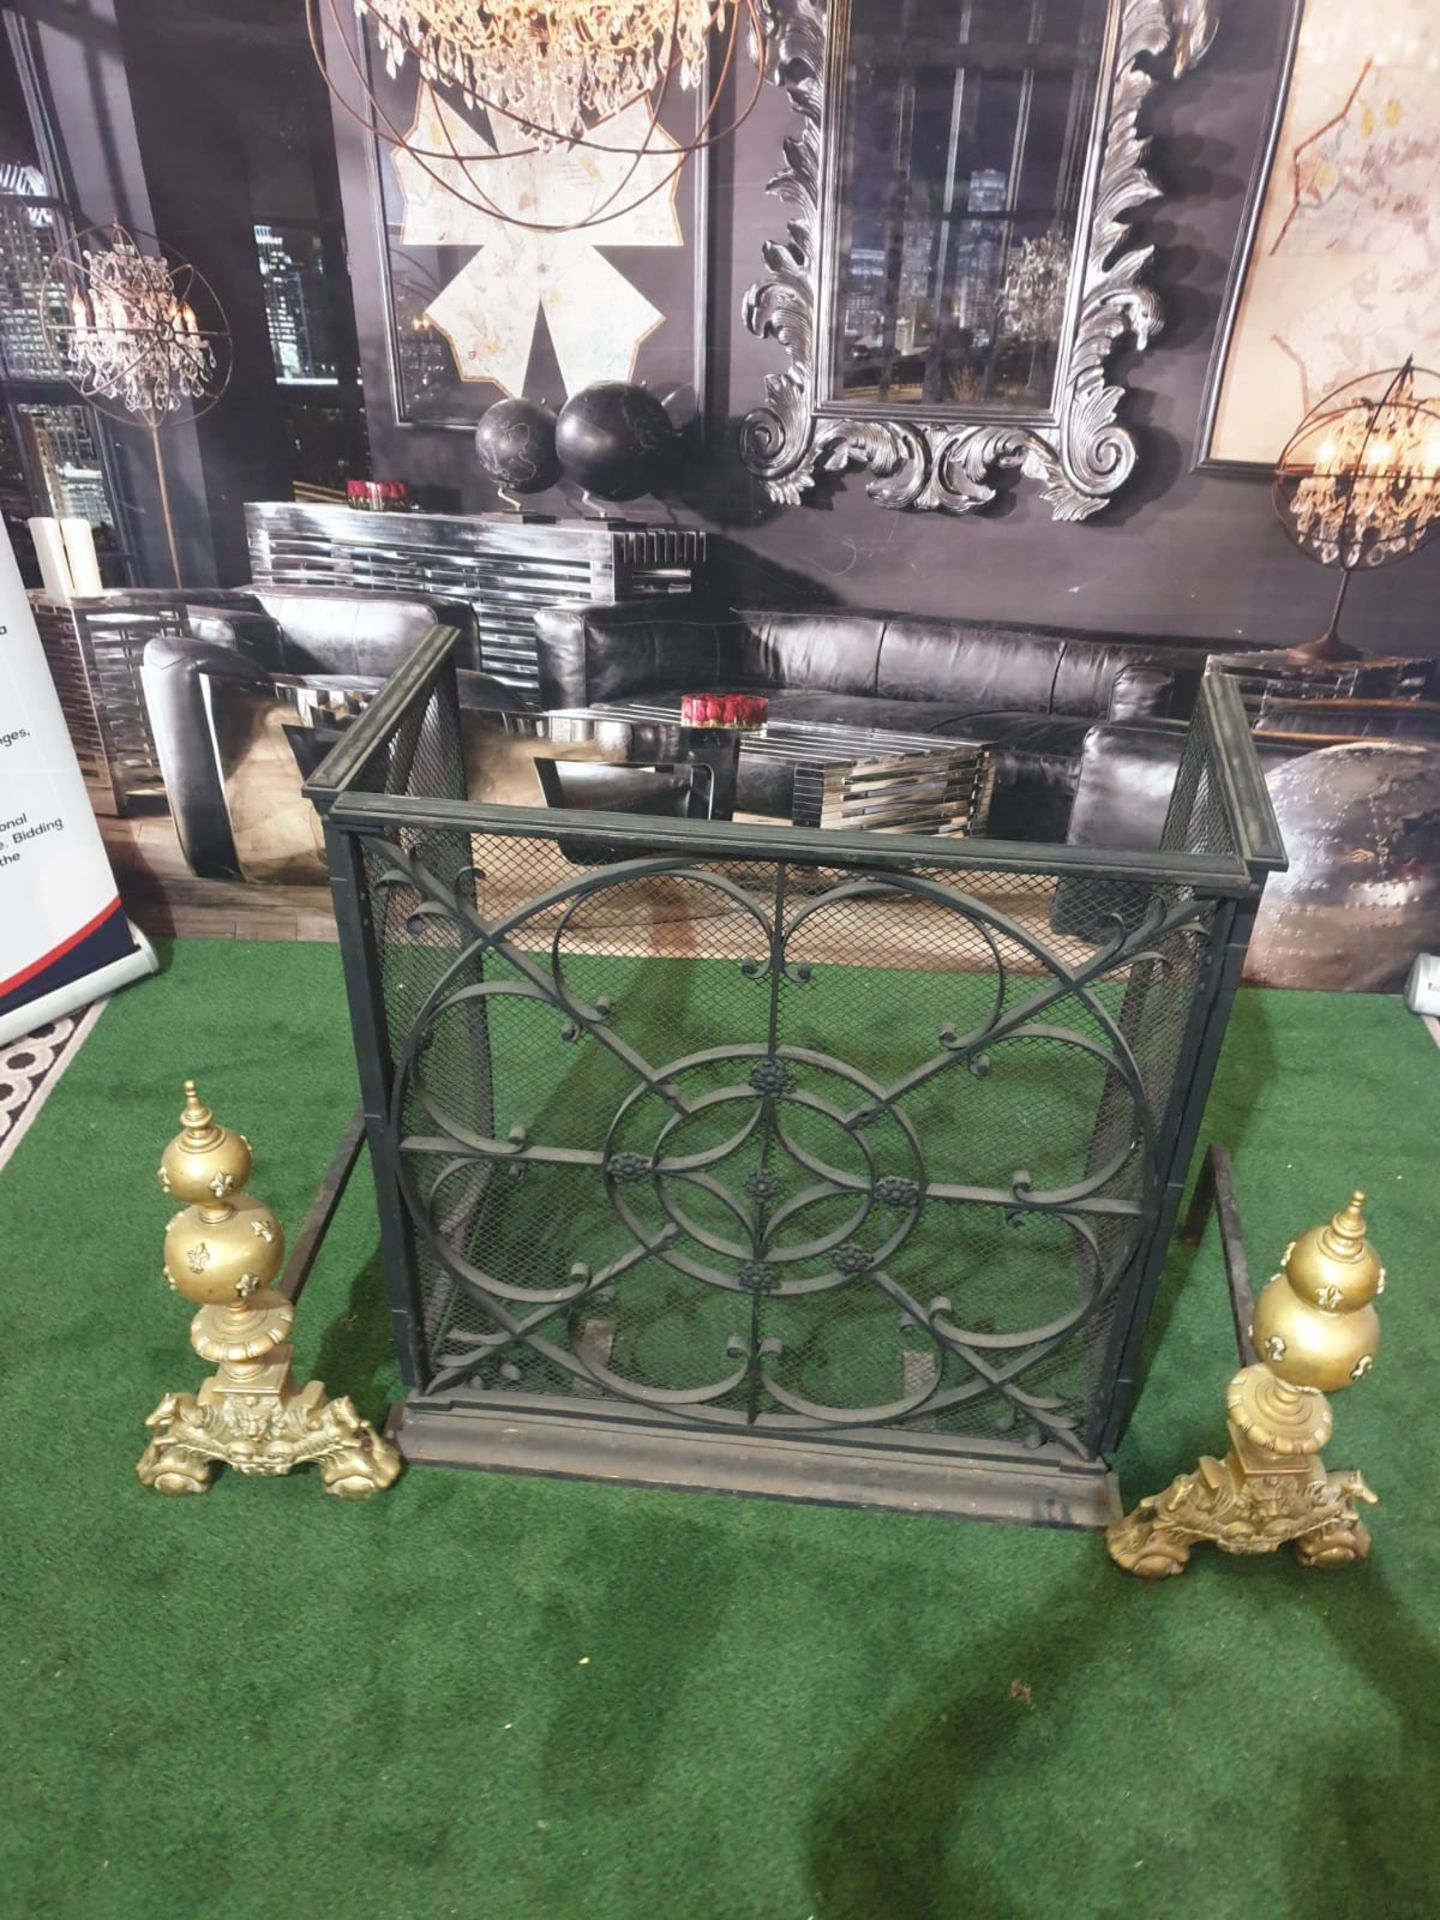 A cast metal fire guard with a pair of Brass Fire Andirons Ornate yet simple and elegant design in - Image 2 of 3